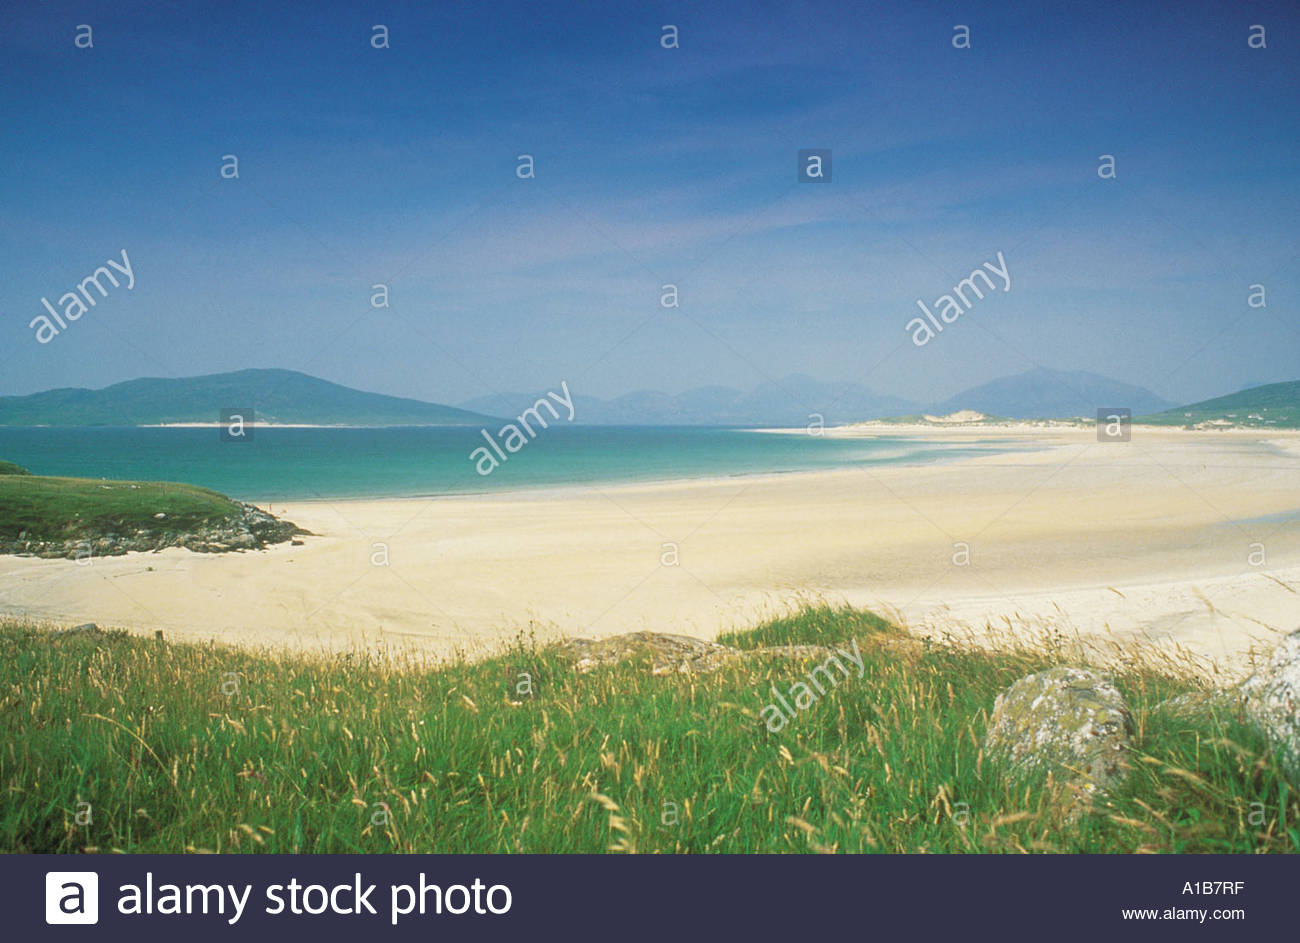 LOOKING OVER THE BROAD EXPANSE OF LUSKENTYRE BEACH GAELIC LOSGAINTIR FROM SEILEBOST THE ISLE OF HARRIS OUTER HEBRIDES - Stock Image